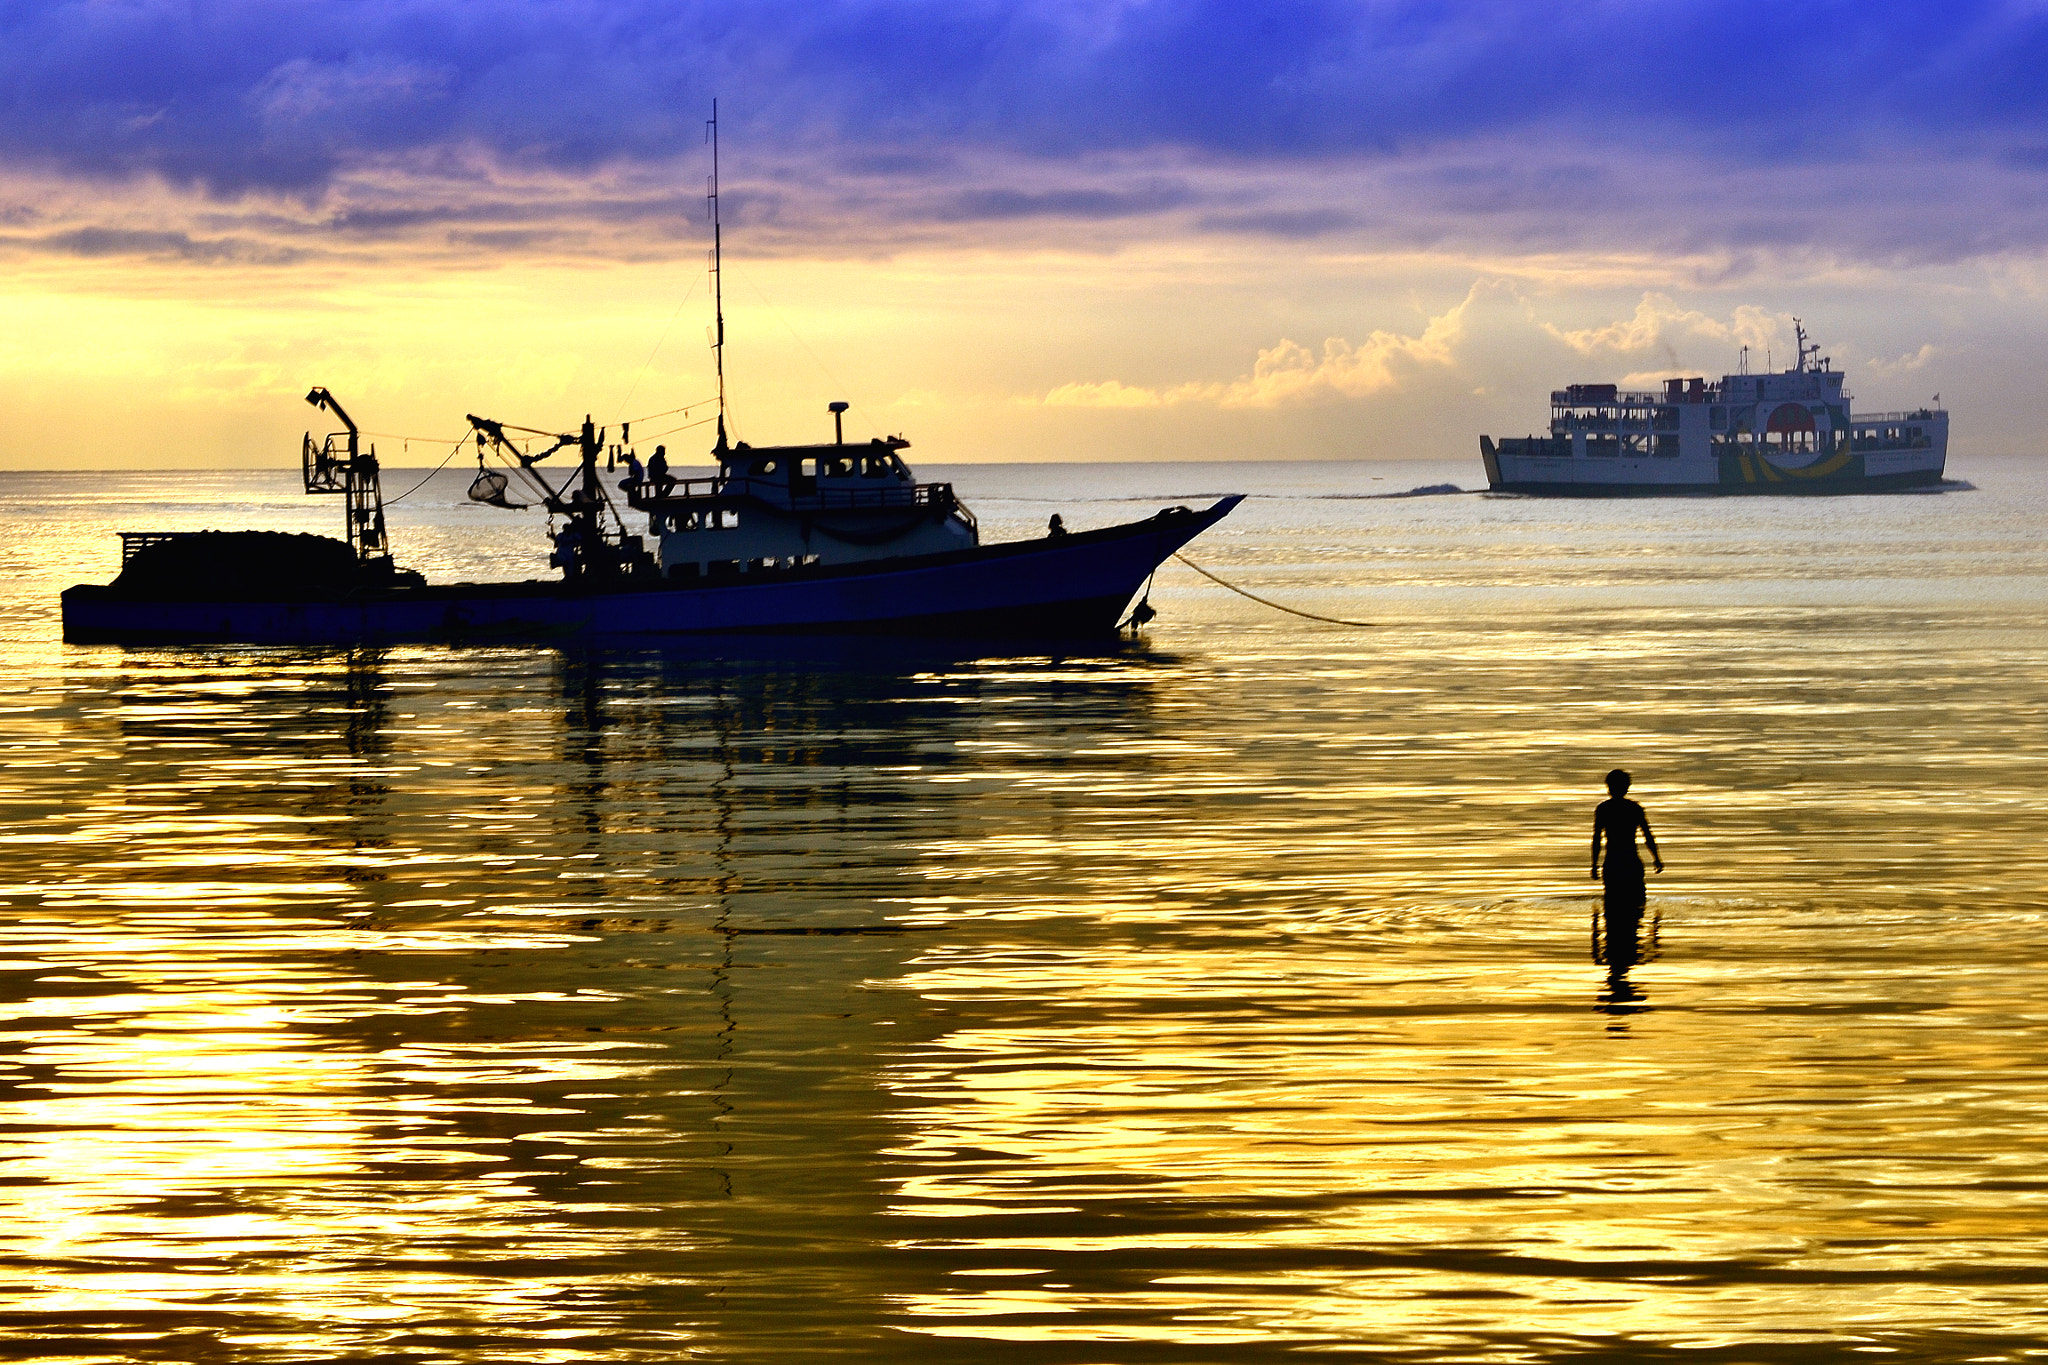 Photograph Golden Sunrise by Wilfredo Lumagbas Jr. on 500px